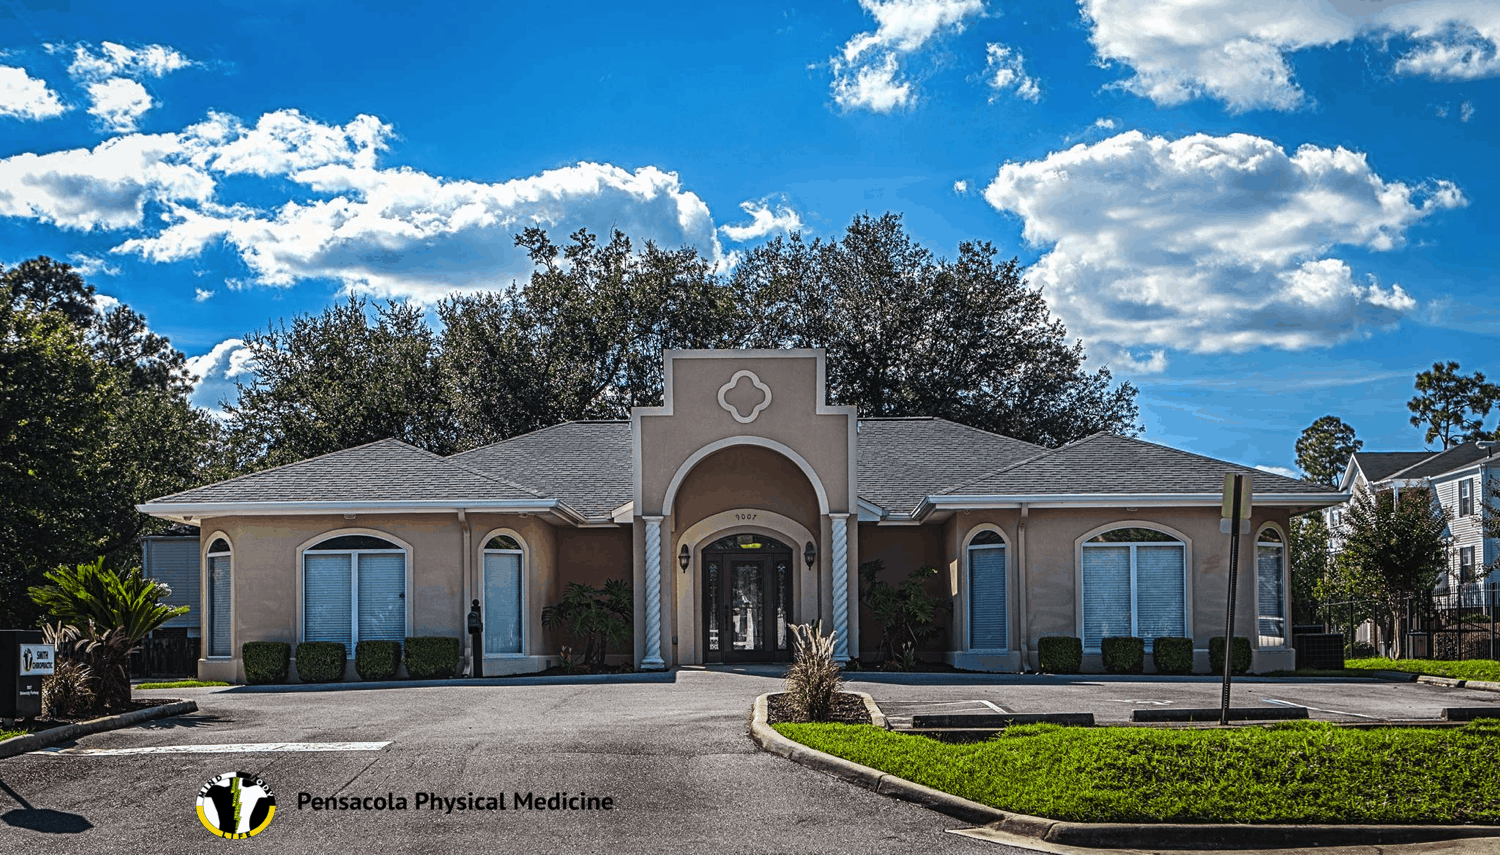 pensacola-physical-medicine